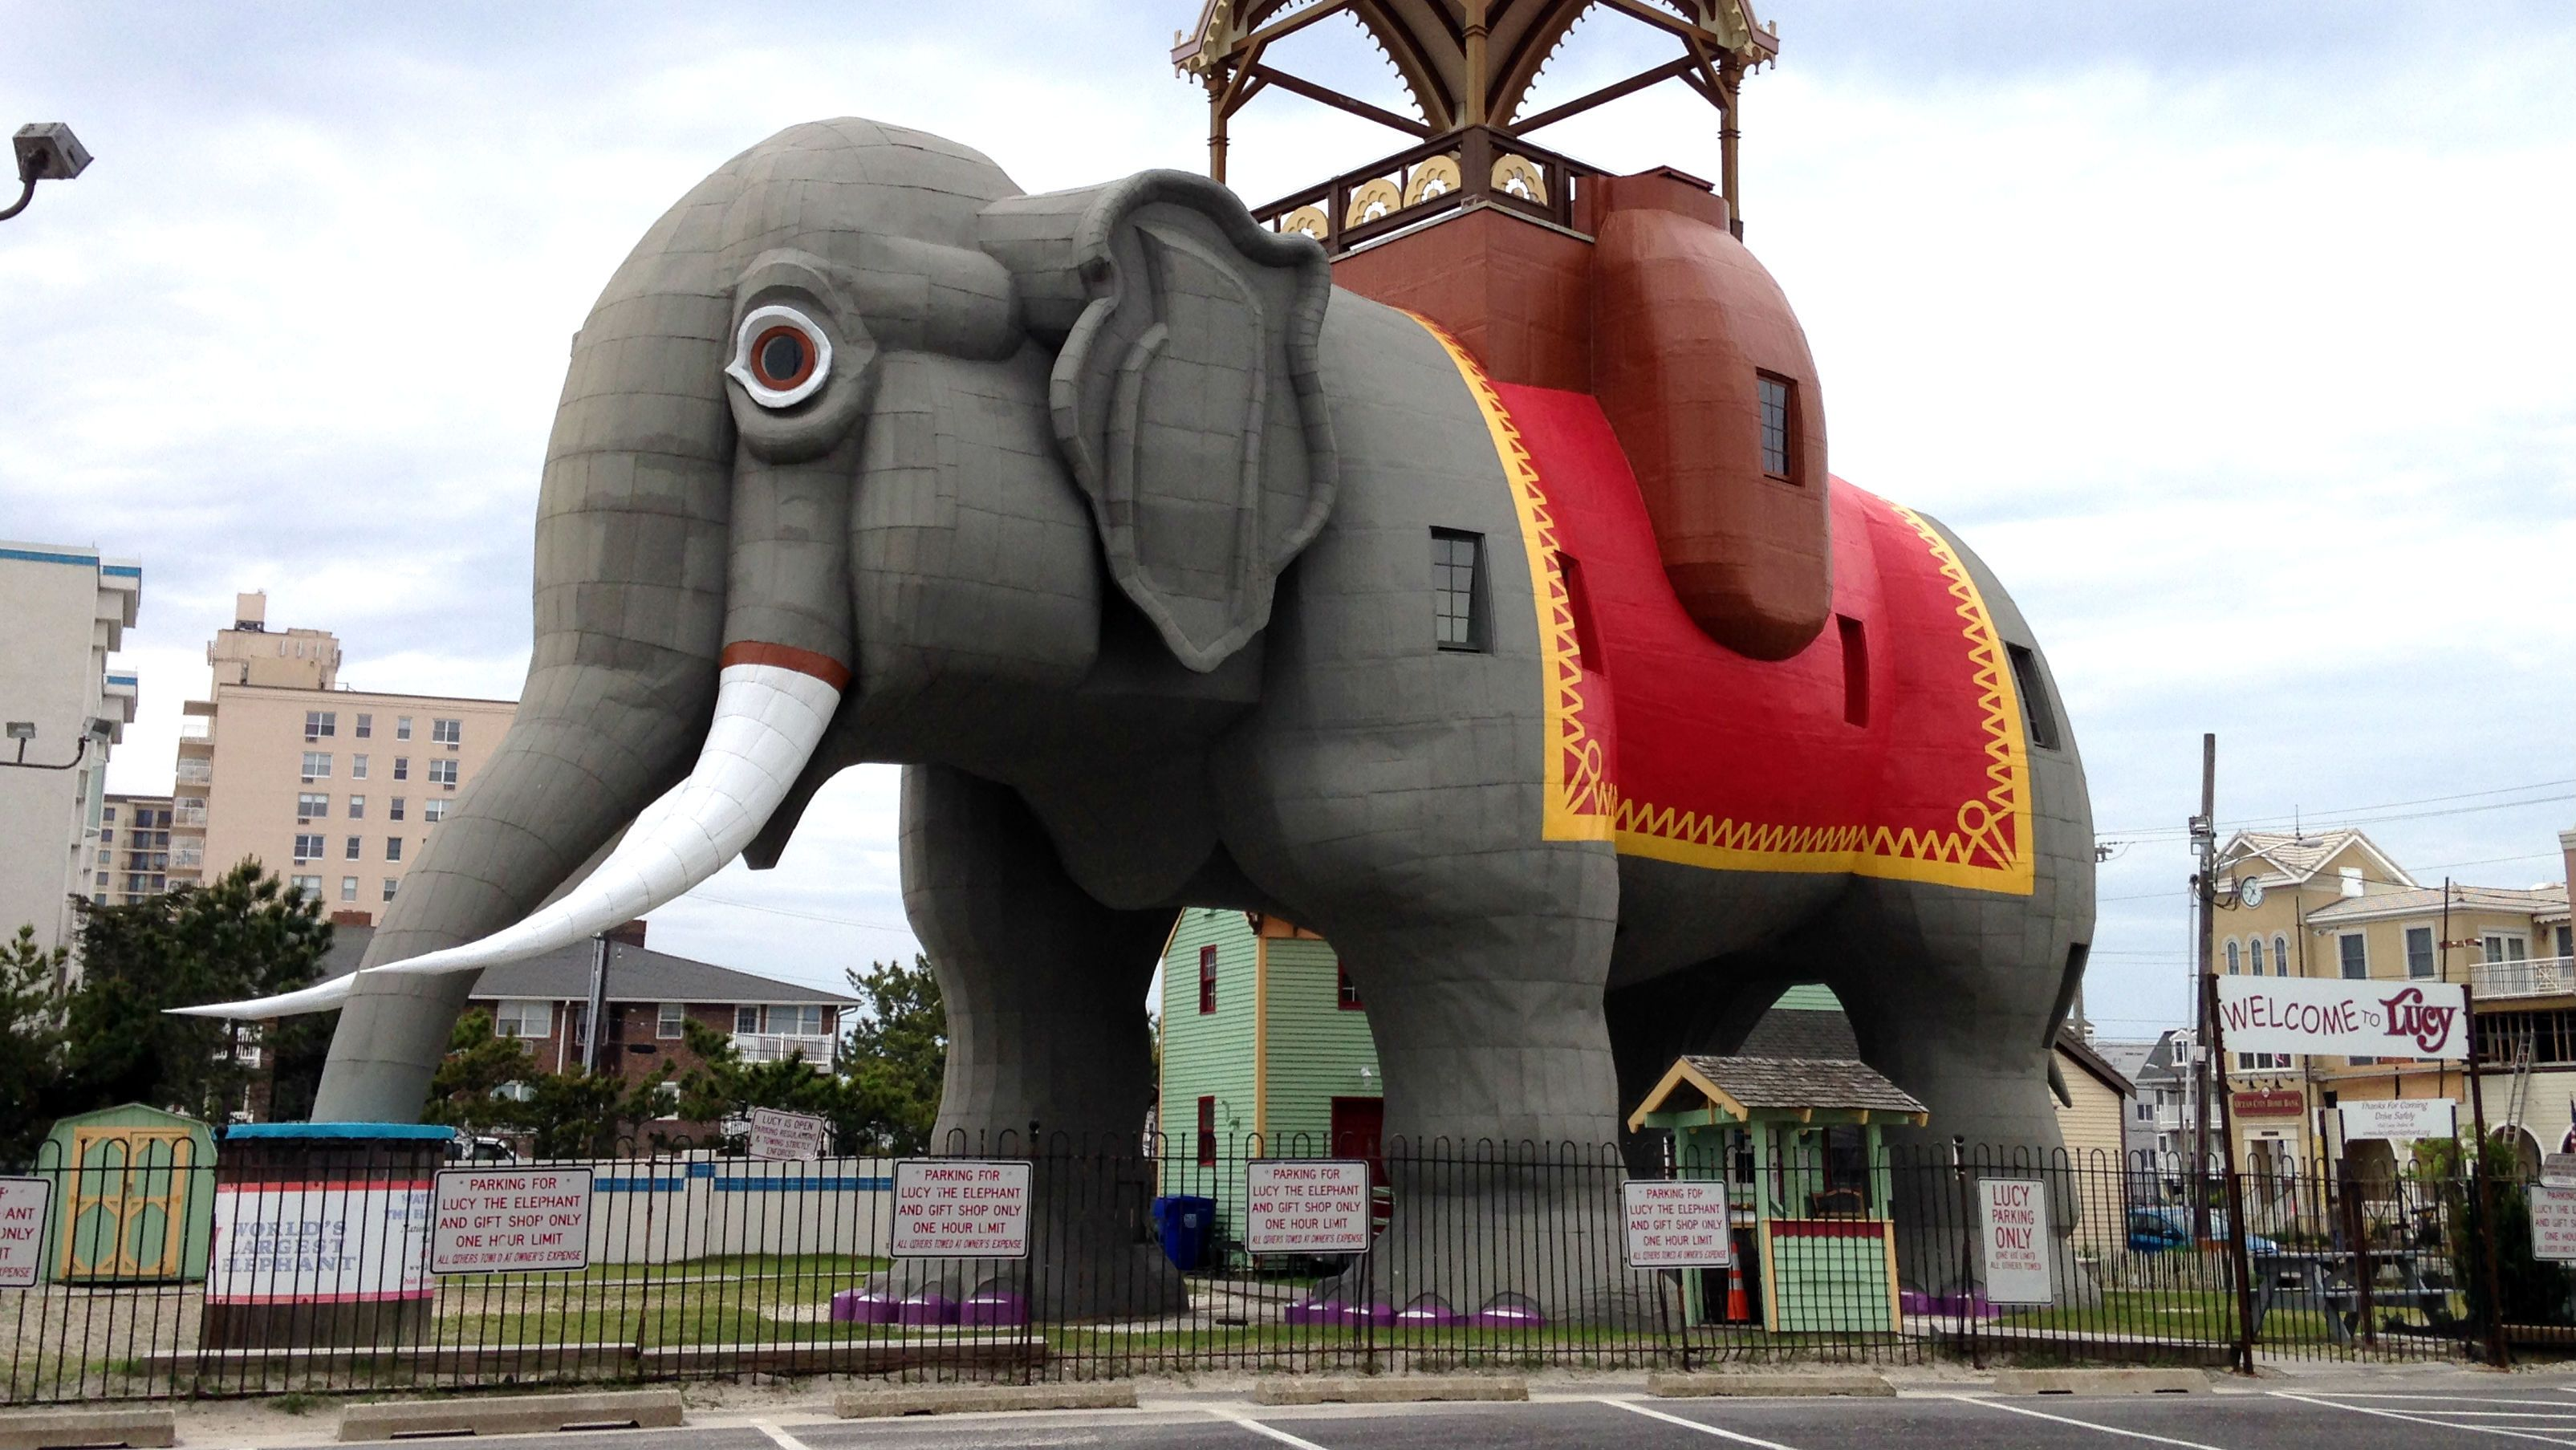 Pin by Rich Quint on Elephant Statues Elephant, Dinosaur